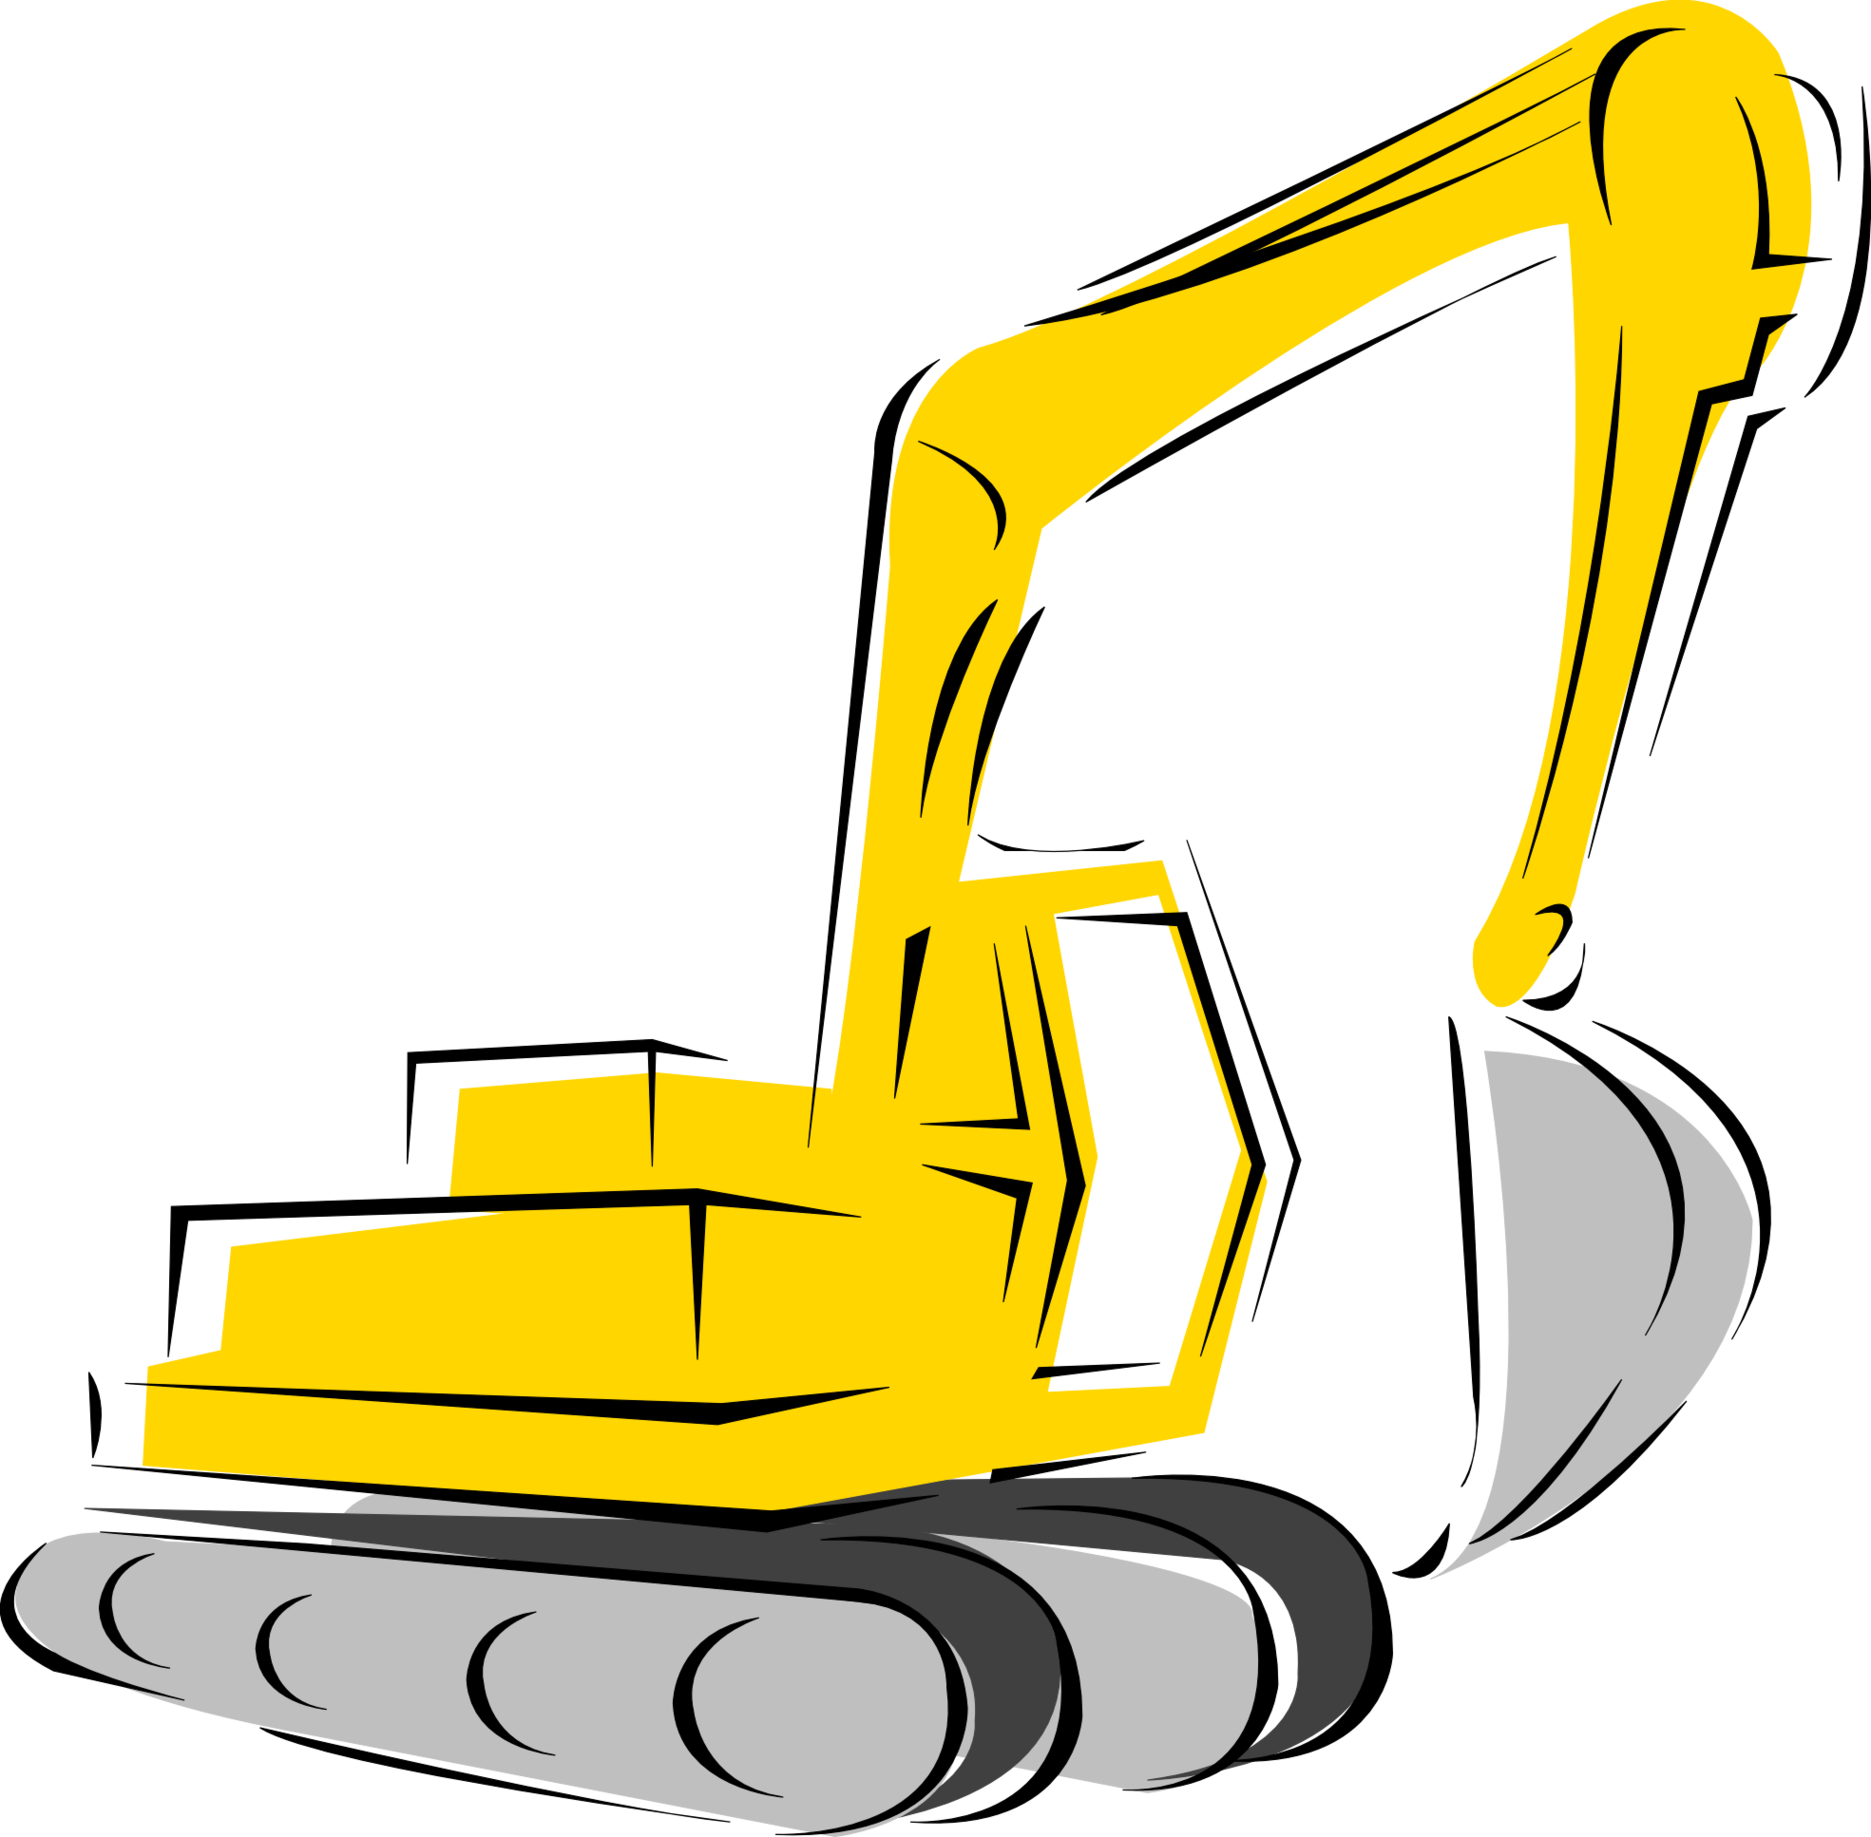 heavy equipment silhouette at getdrawings com free for personal rh getdrawings com heavy construction equipment clipart heavy construction equipment clipart